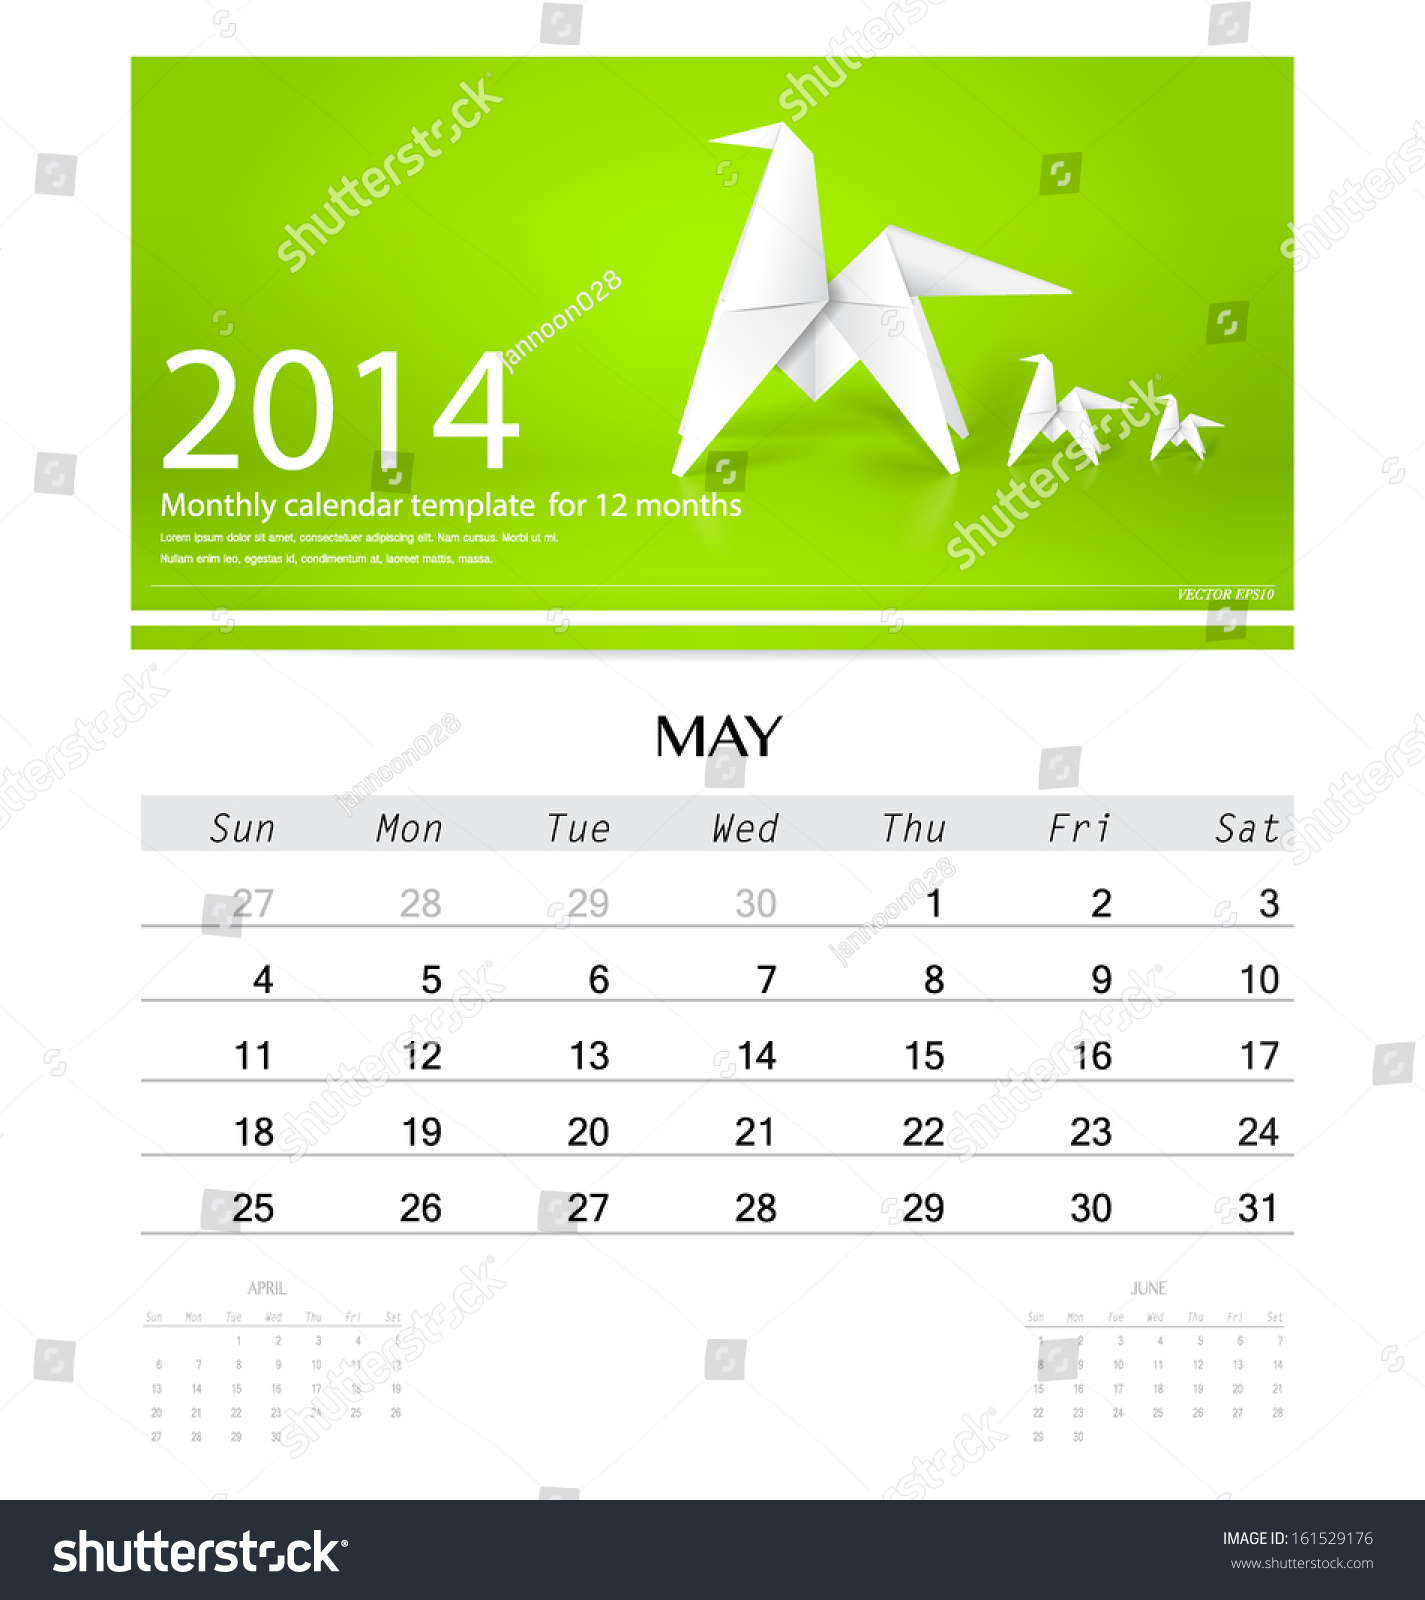 Monthly Calendar Template Vector : Calendar monthly template for may origami